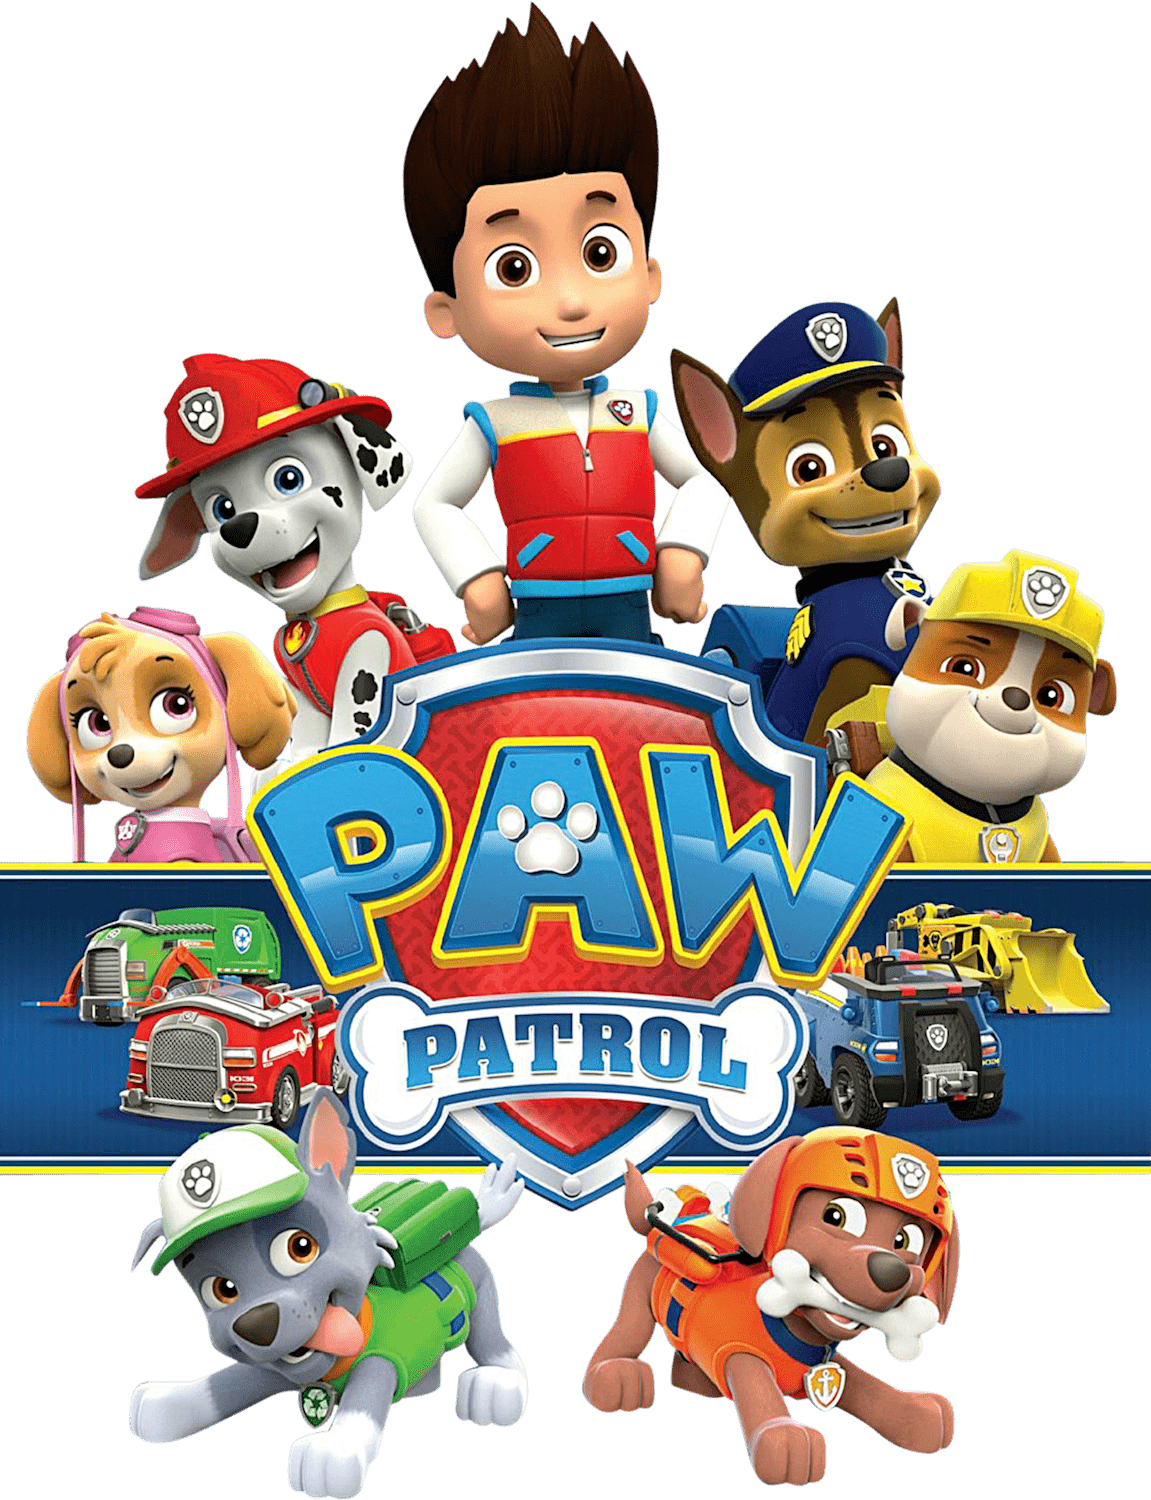 Paw patrol clipart without a background banner black and white Pawpatrol With Logo Png Transparent Paw Patrol Clipart Png banner black and white